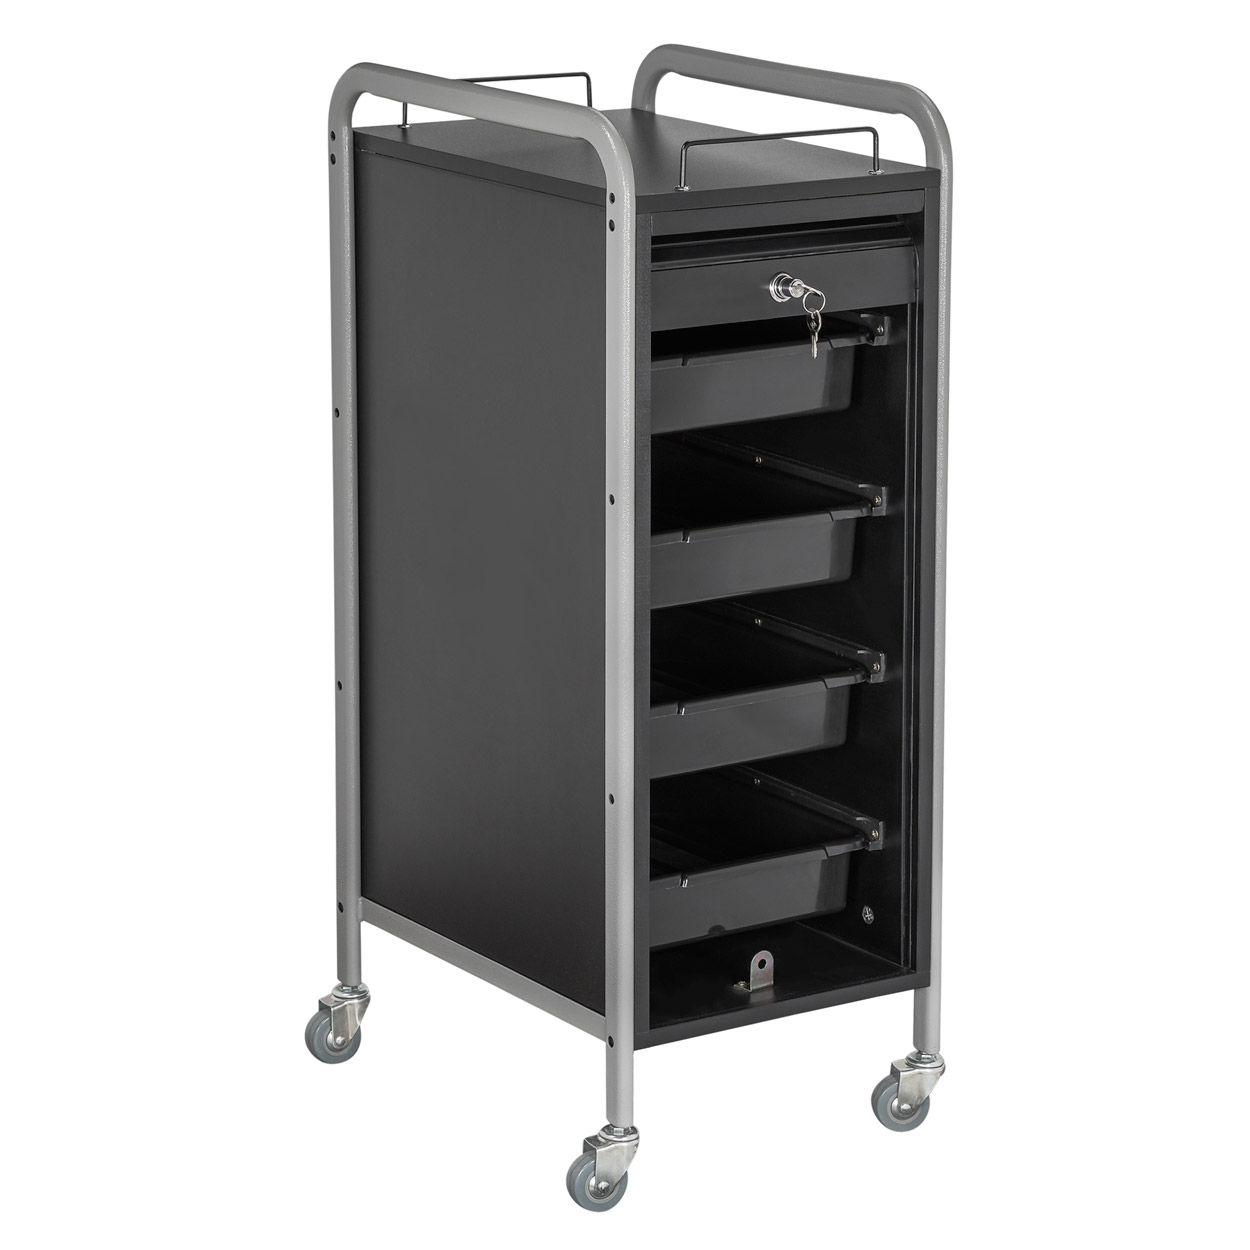 Hair Salon Metal Locking Trolley Cart with Appliance Holder alternative product image 1